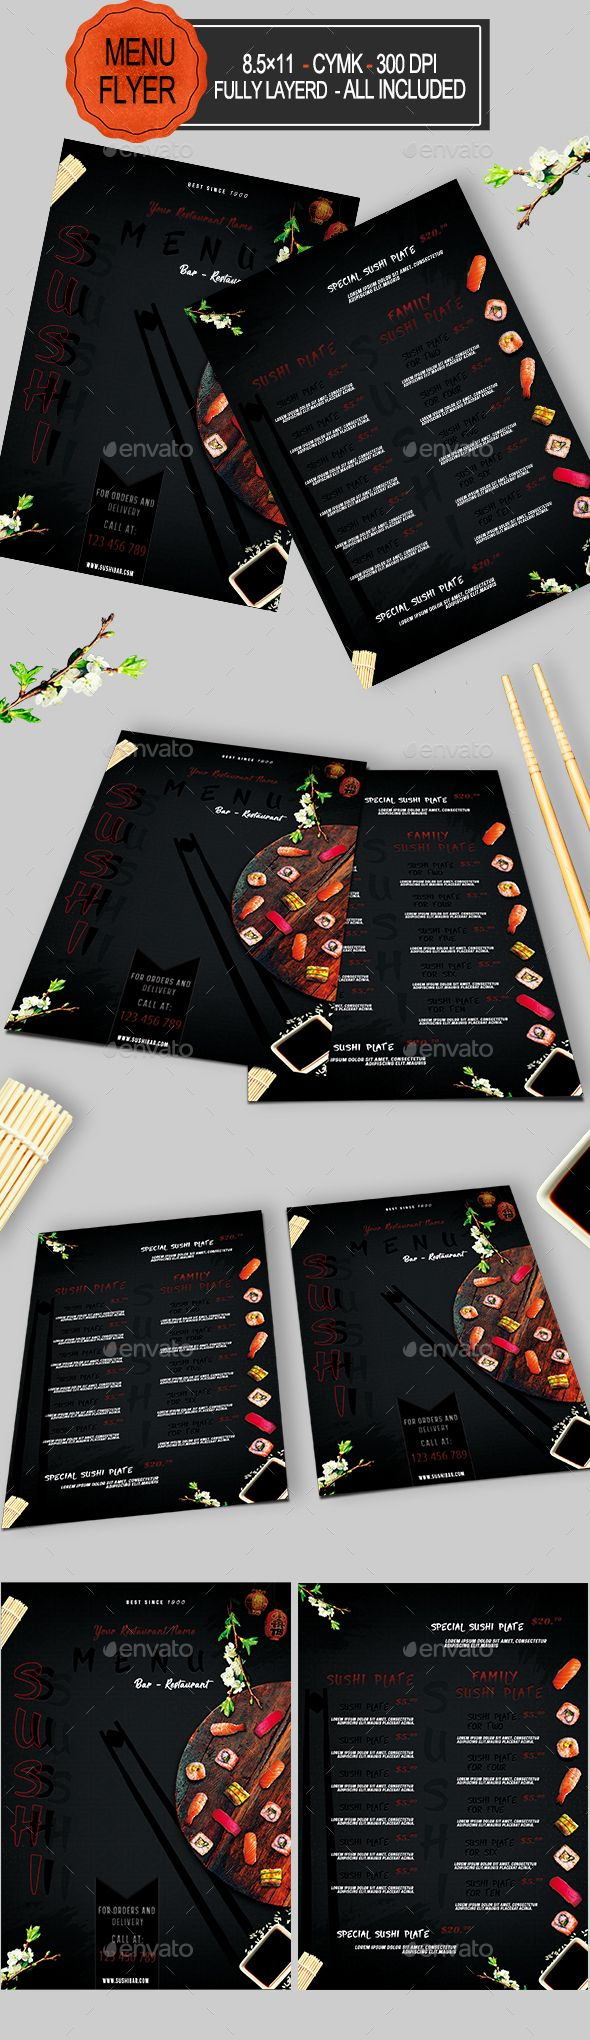 Sushi Menu Template PSD